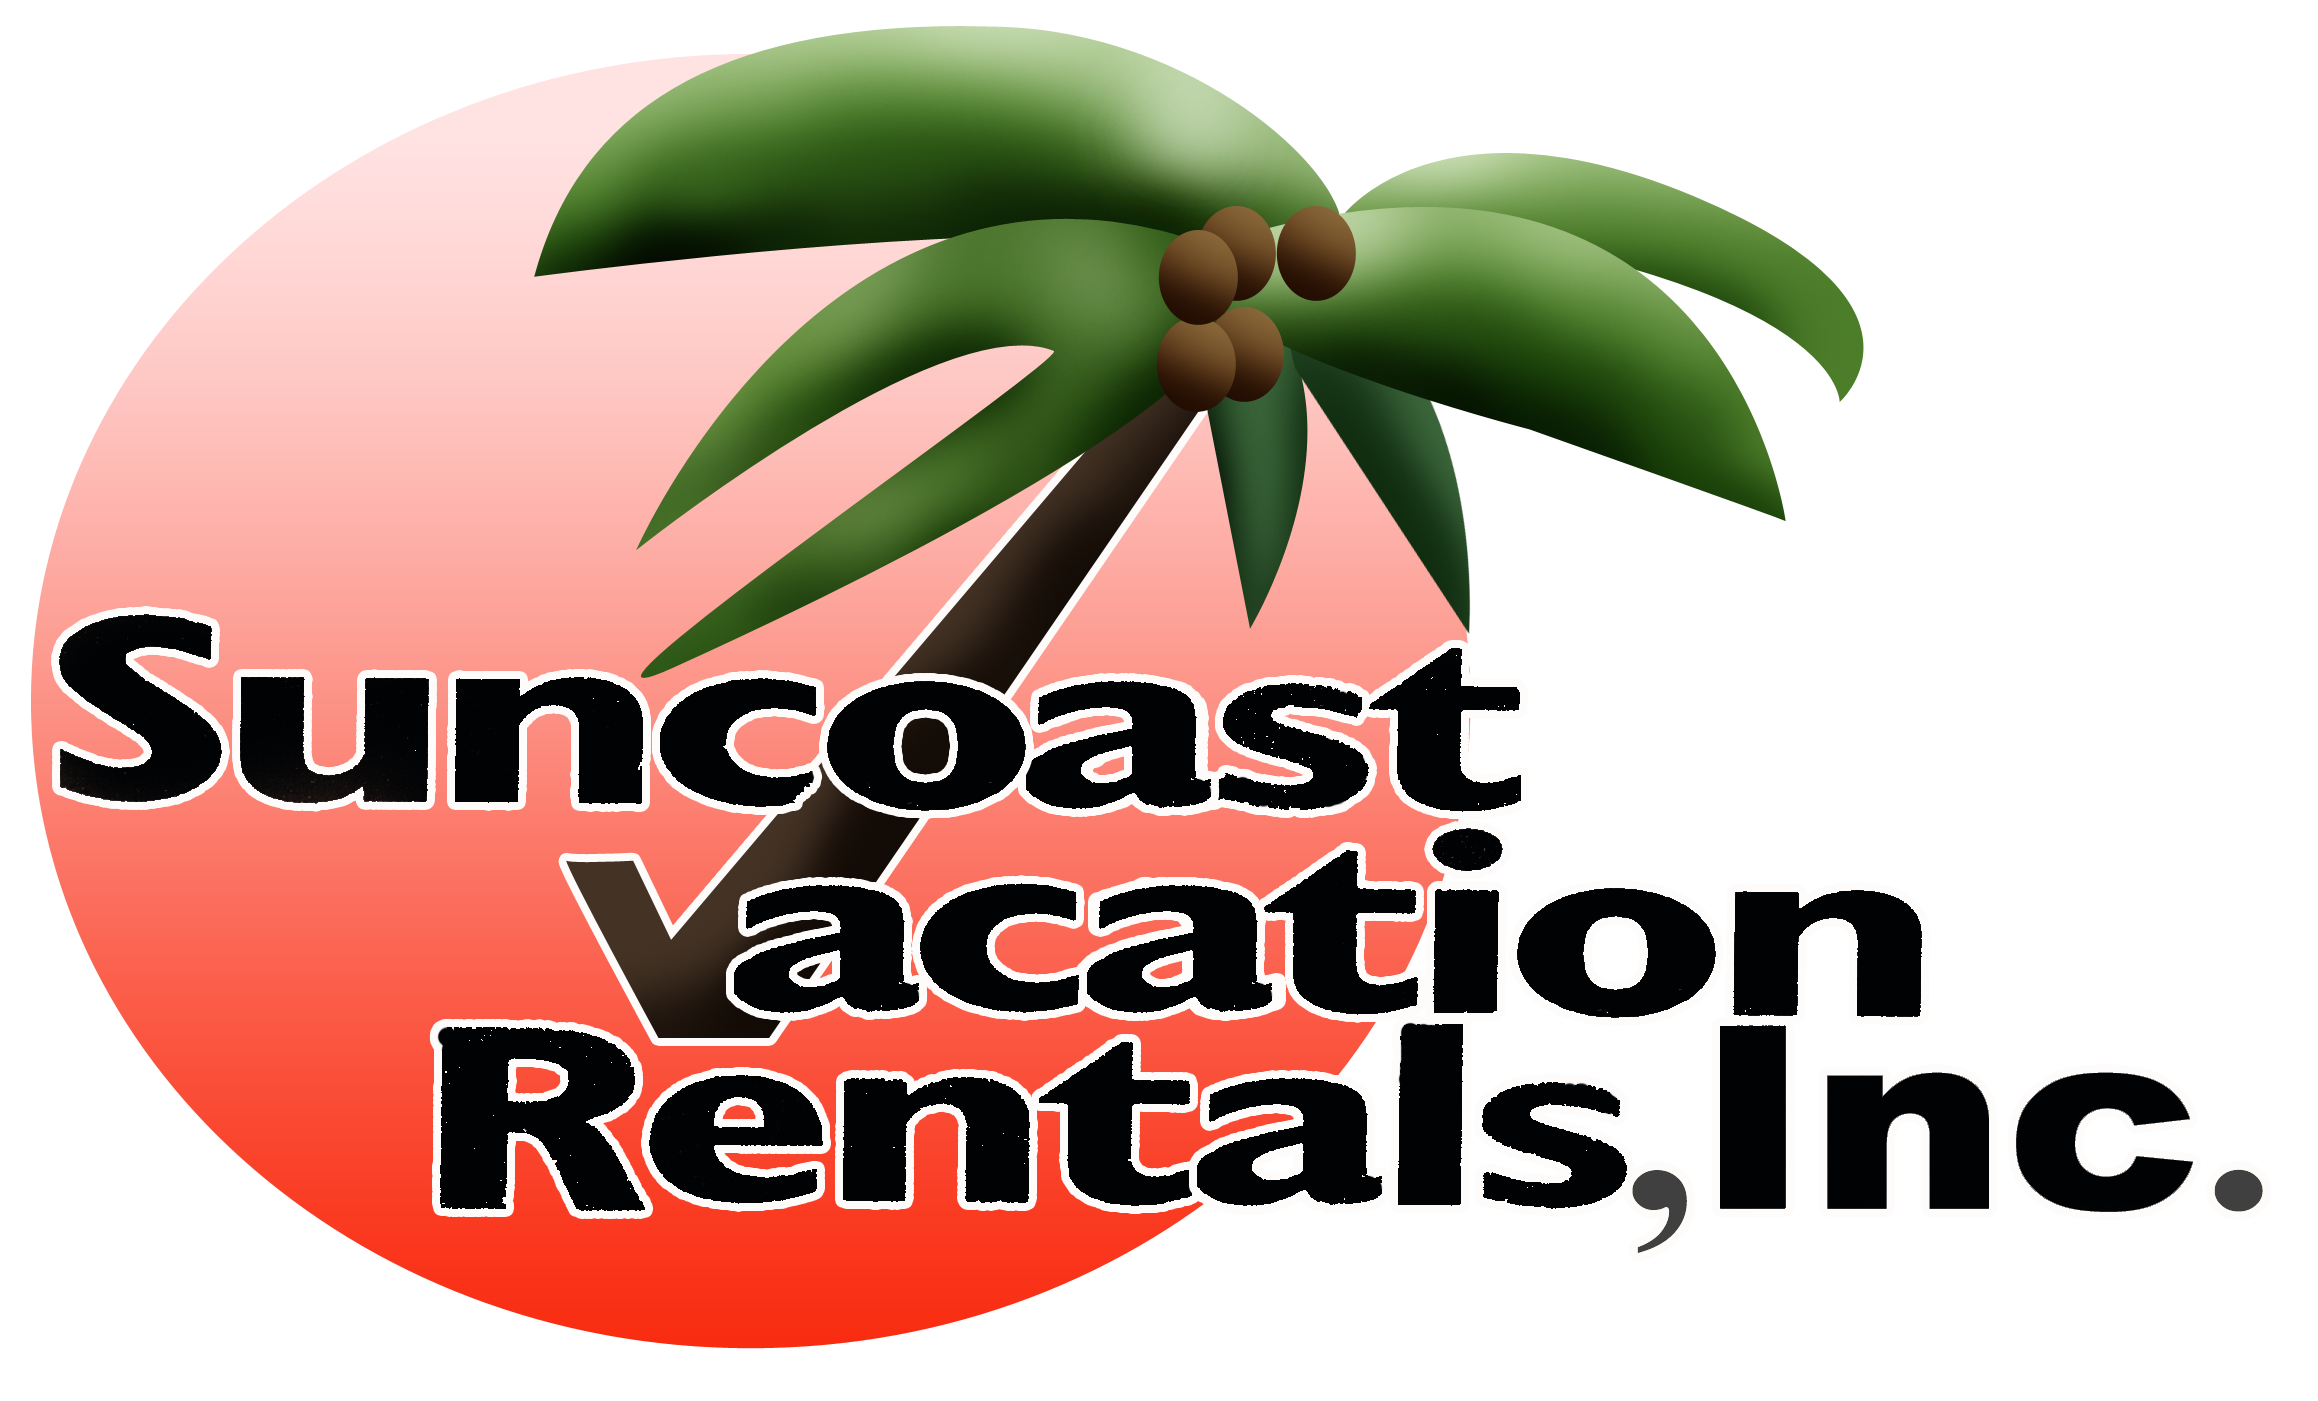 Welcome To Suncoast Vacation Rentals- Serving Tampa Bay and the